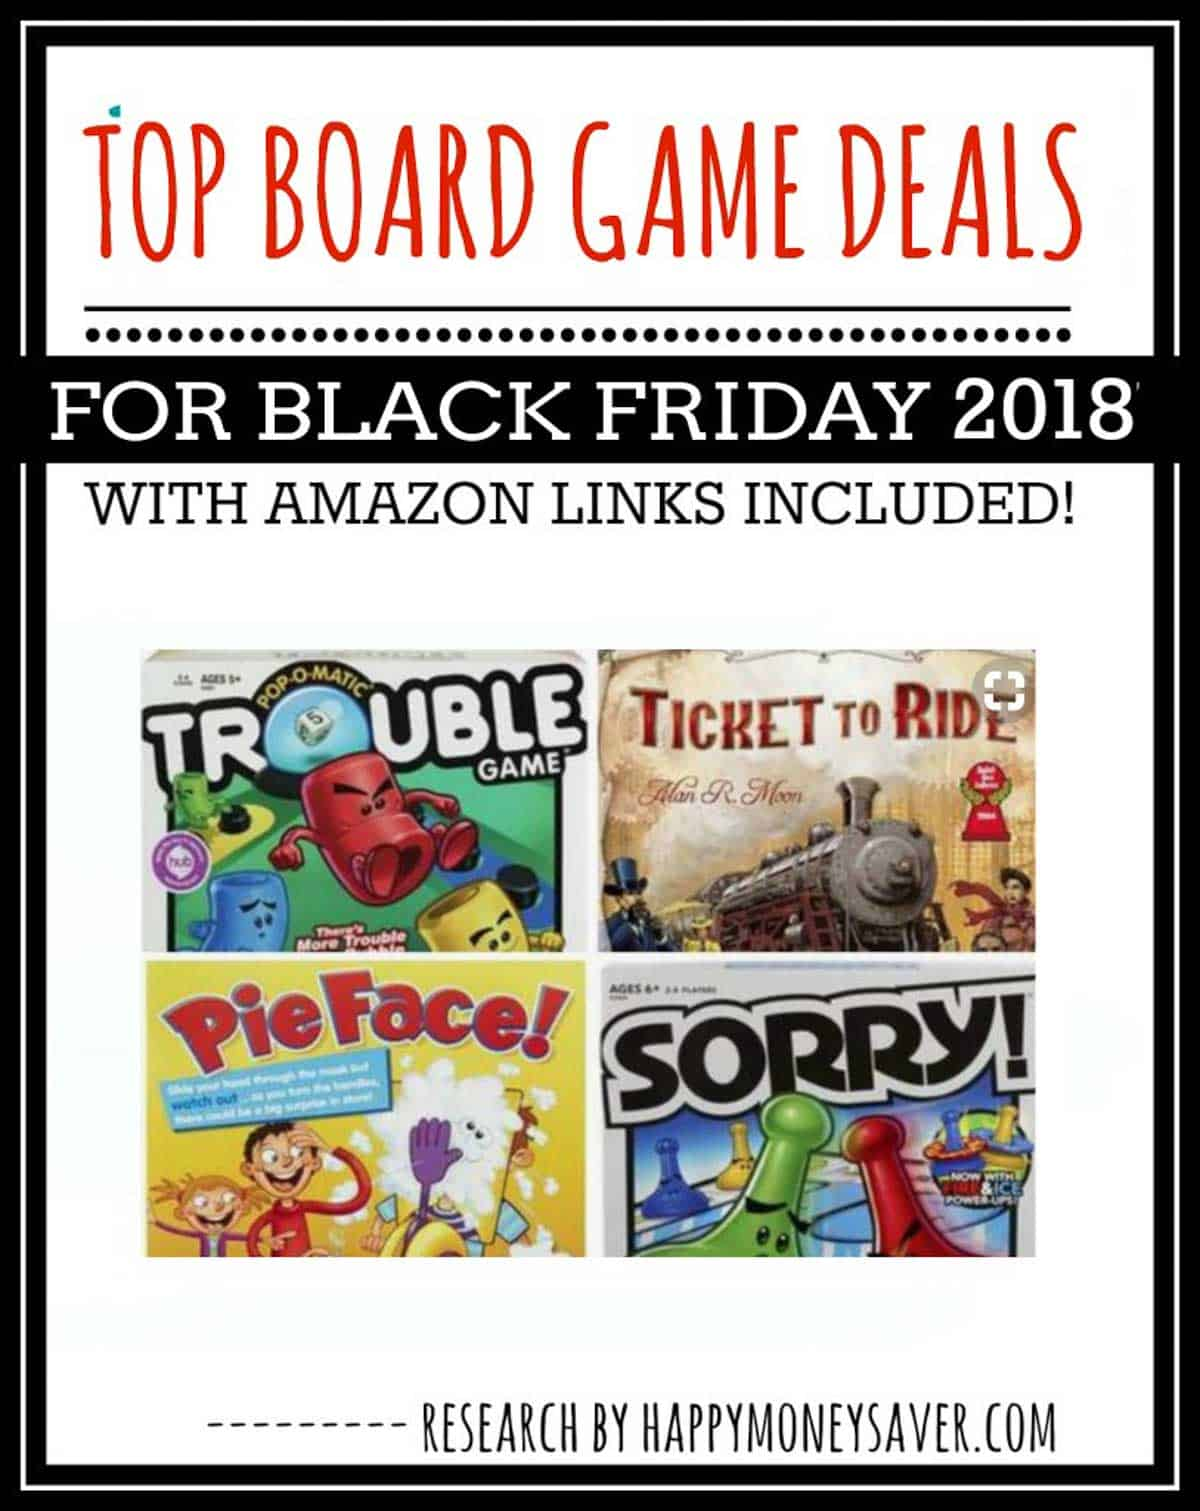 board game deals for black friday 2018